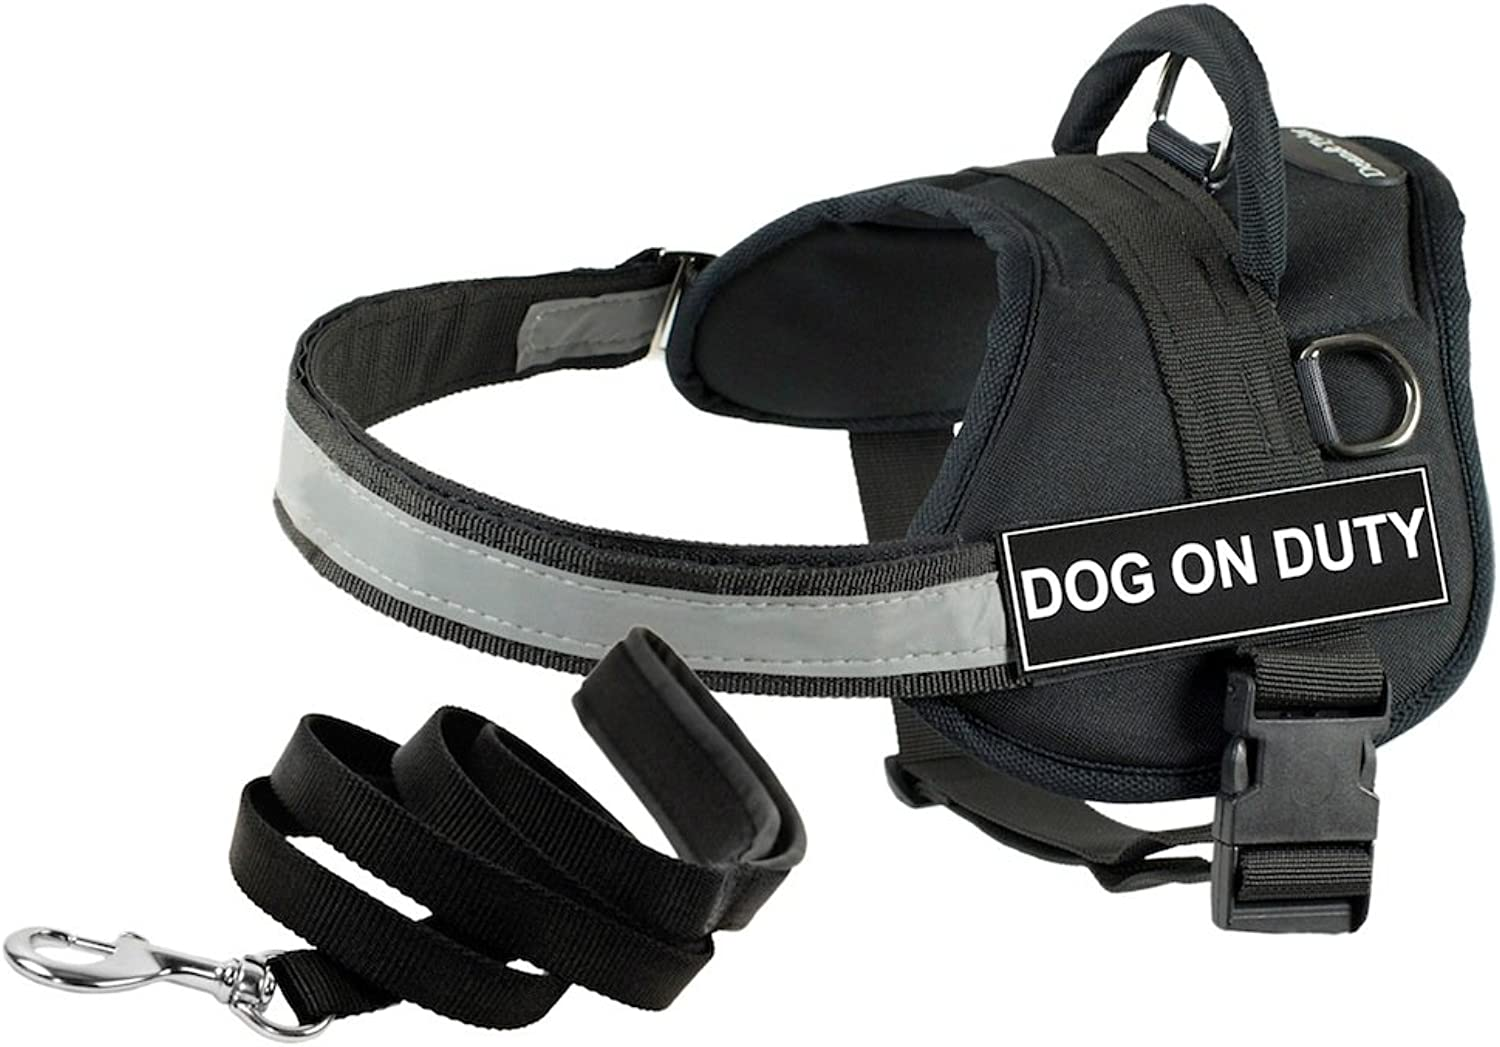 Dean and Tyler Bundle One DT Works Harness, Dog On Duty, XXSmall (18, 21) + One Padded Puppy Leash, 6Feet Stainless Steel Snap, Black